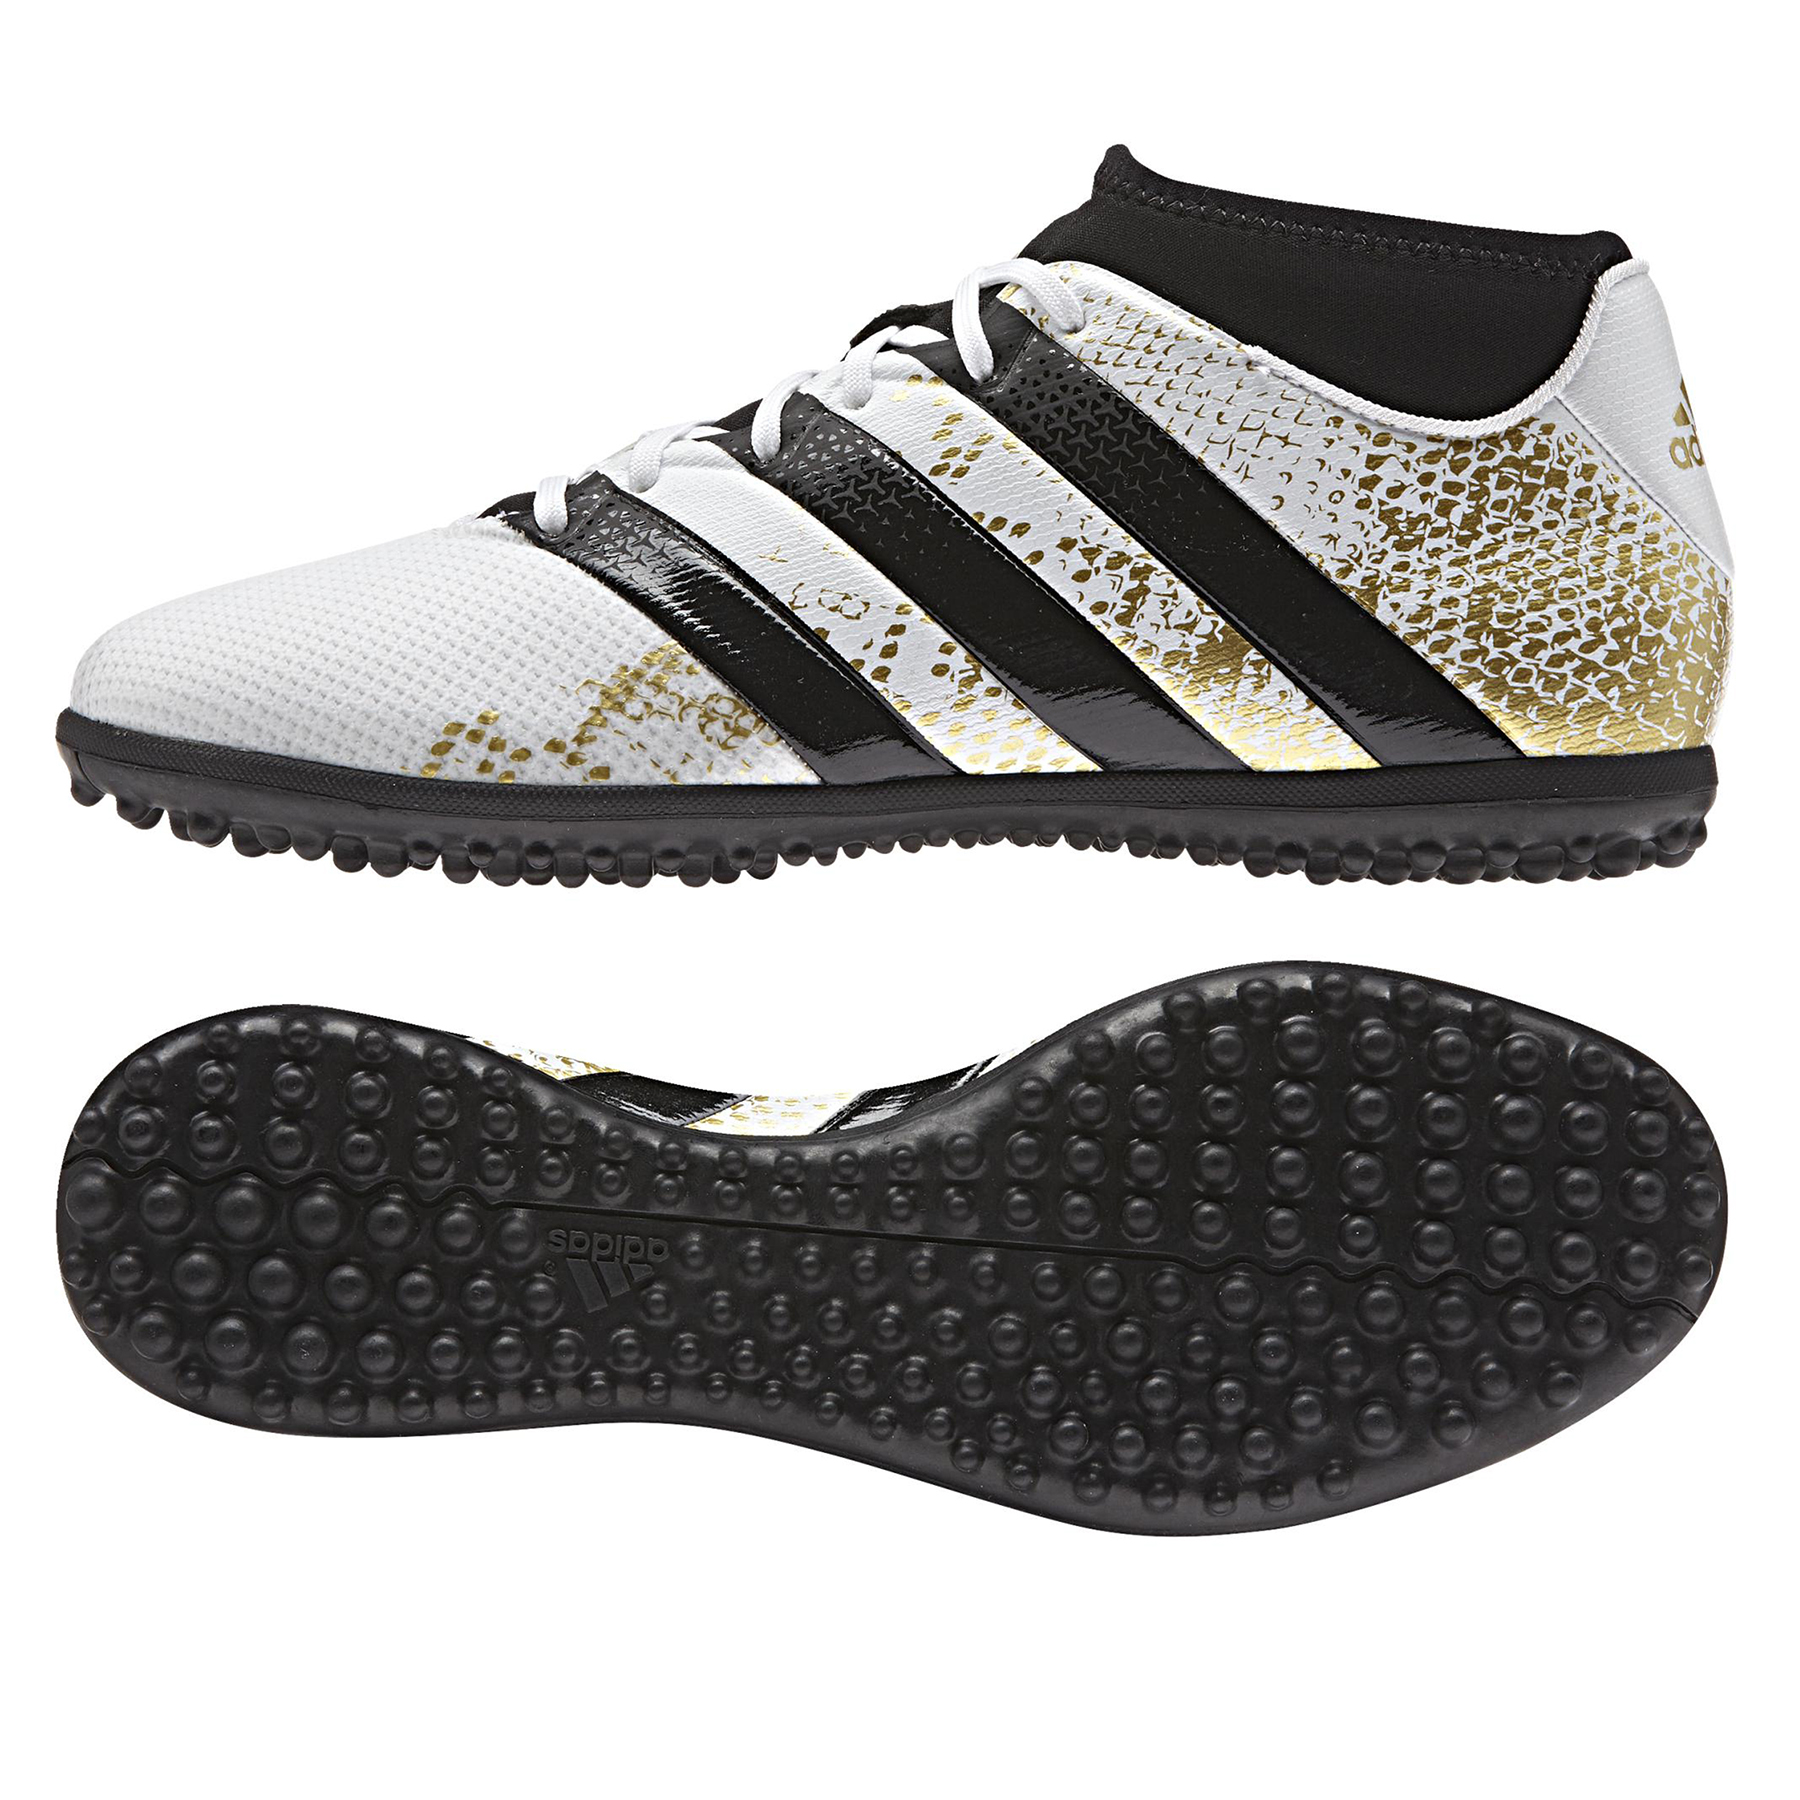 adidas Ace 16.3 PrimeMesh Astroturf Trainers - White/Gold Metallic/Cor